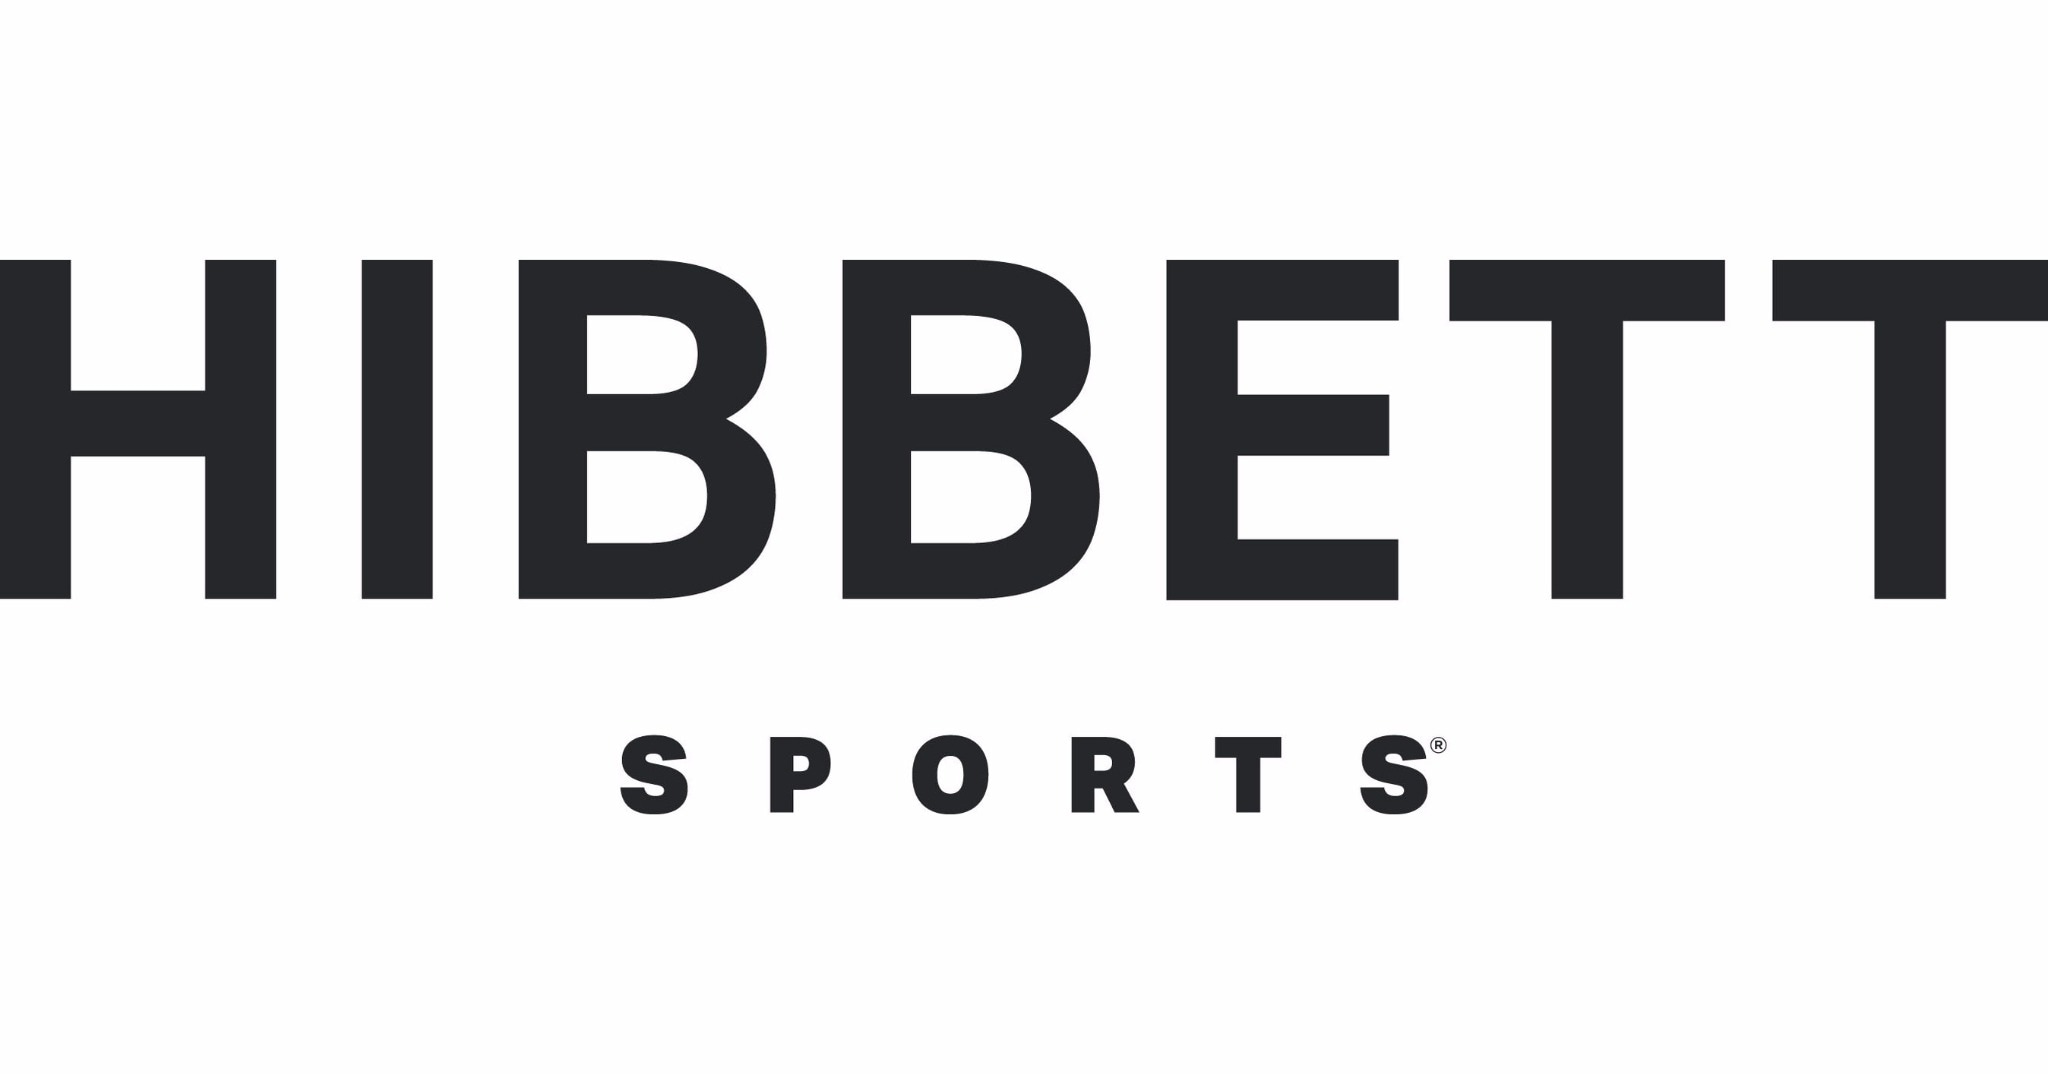 Hibbett Sports promo codes